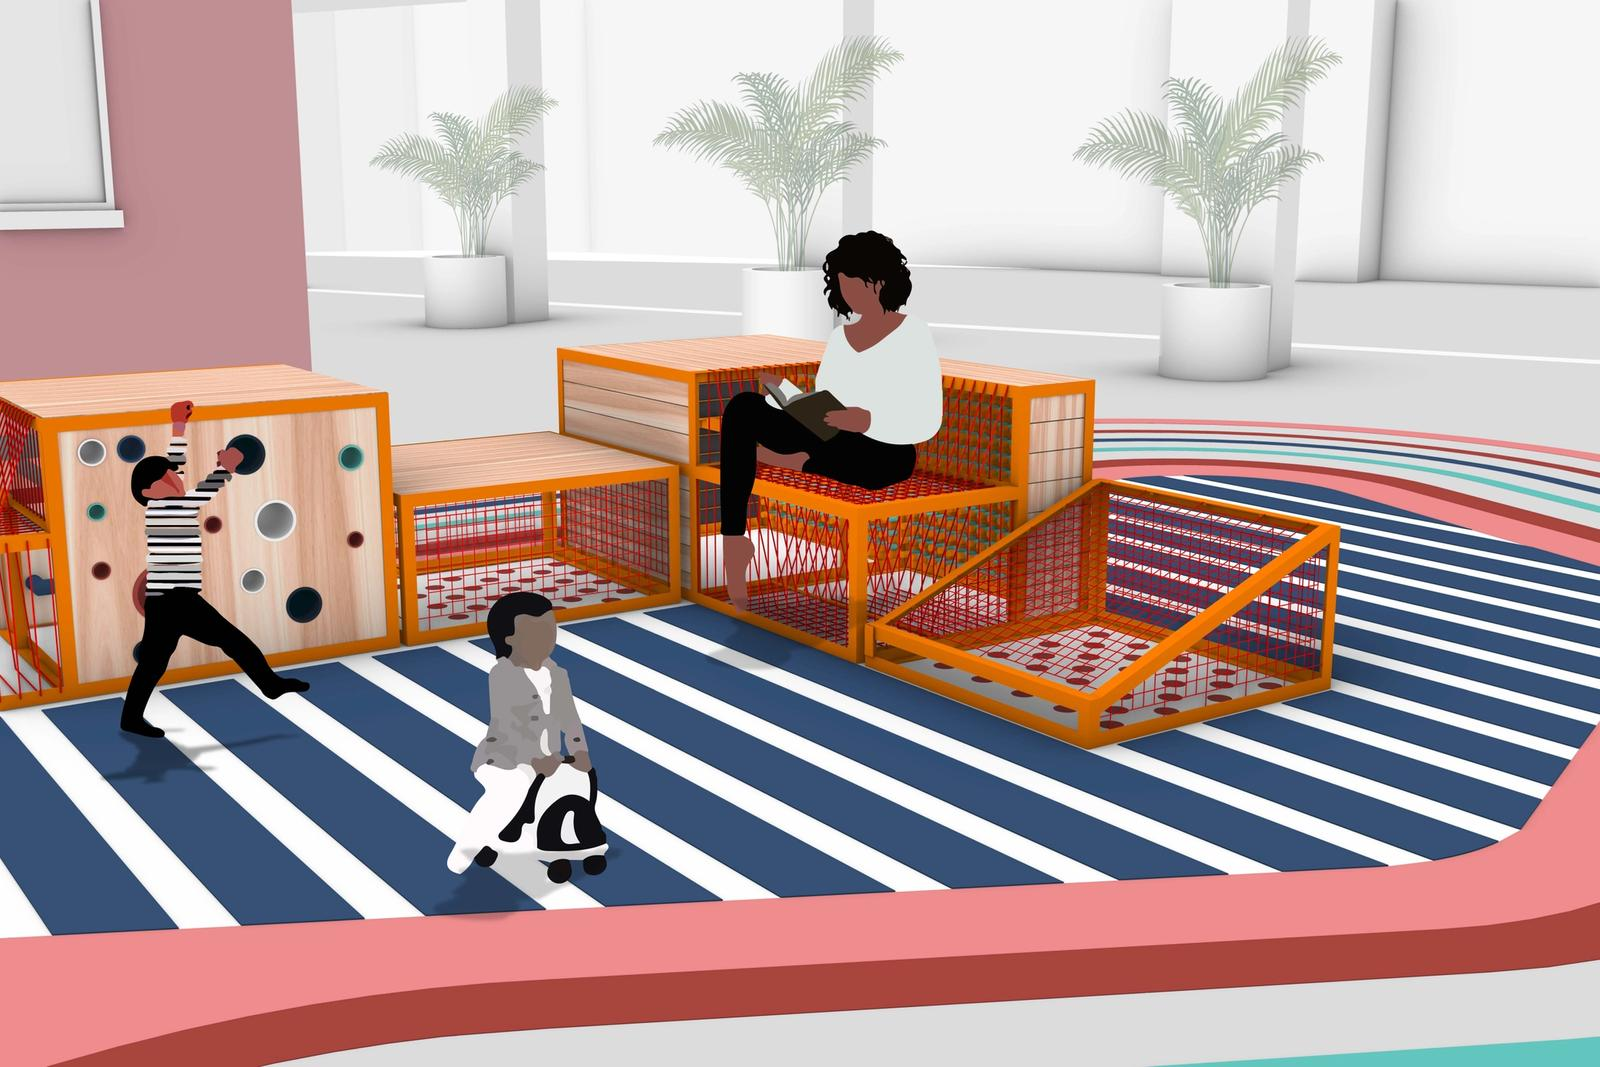 View of the Play Furniture in its default formation